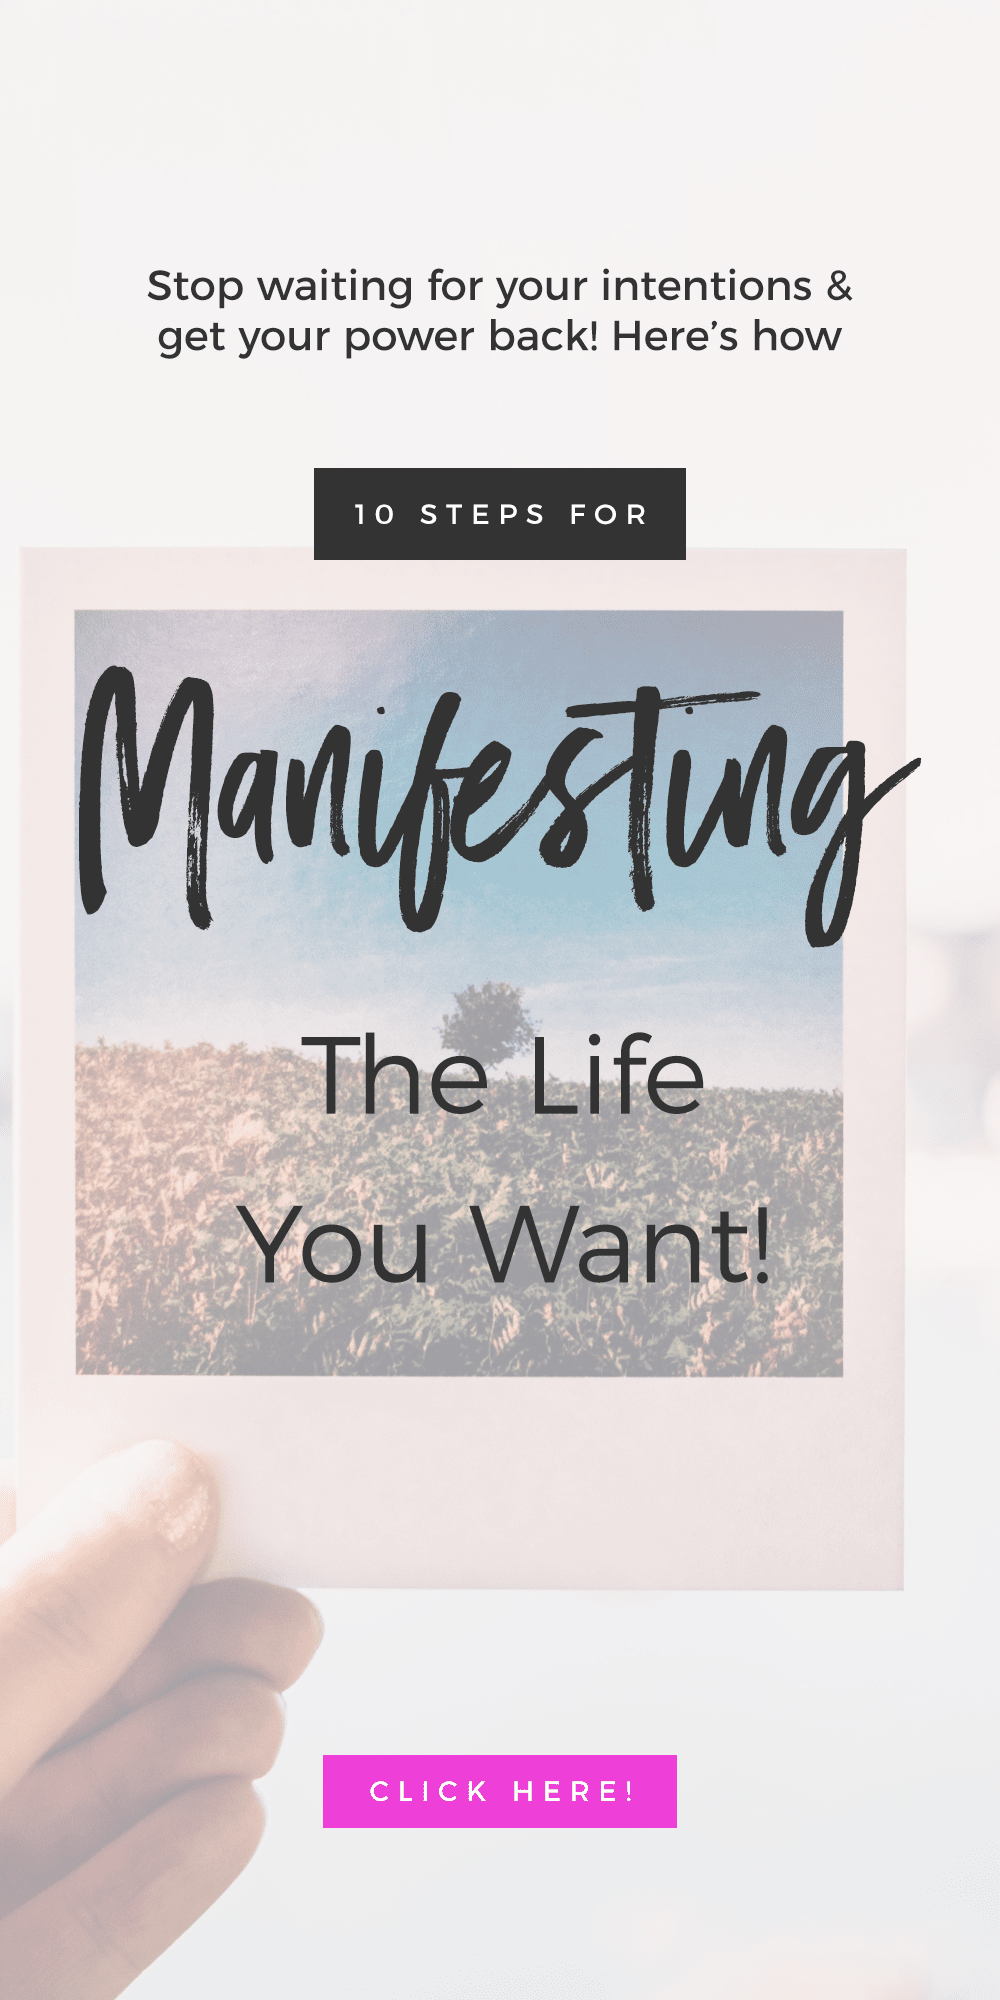 10 Tips For Manifesting The Life You Want!